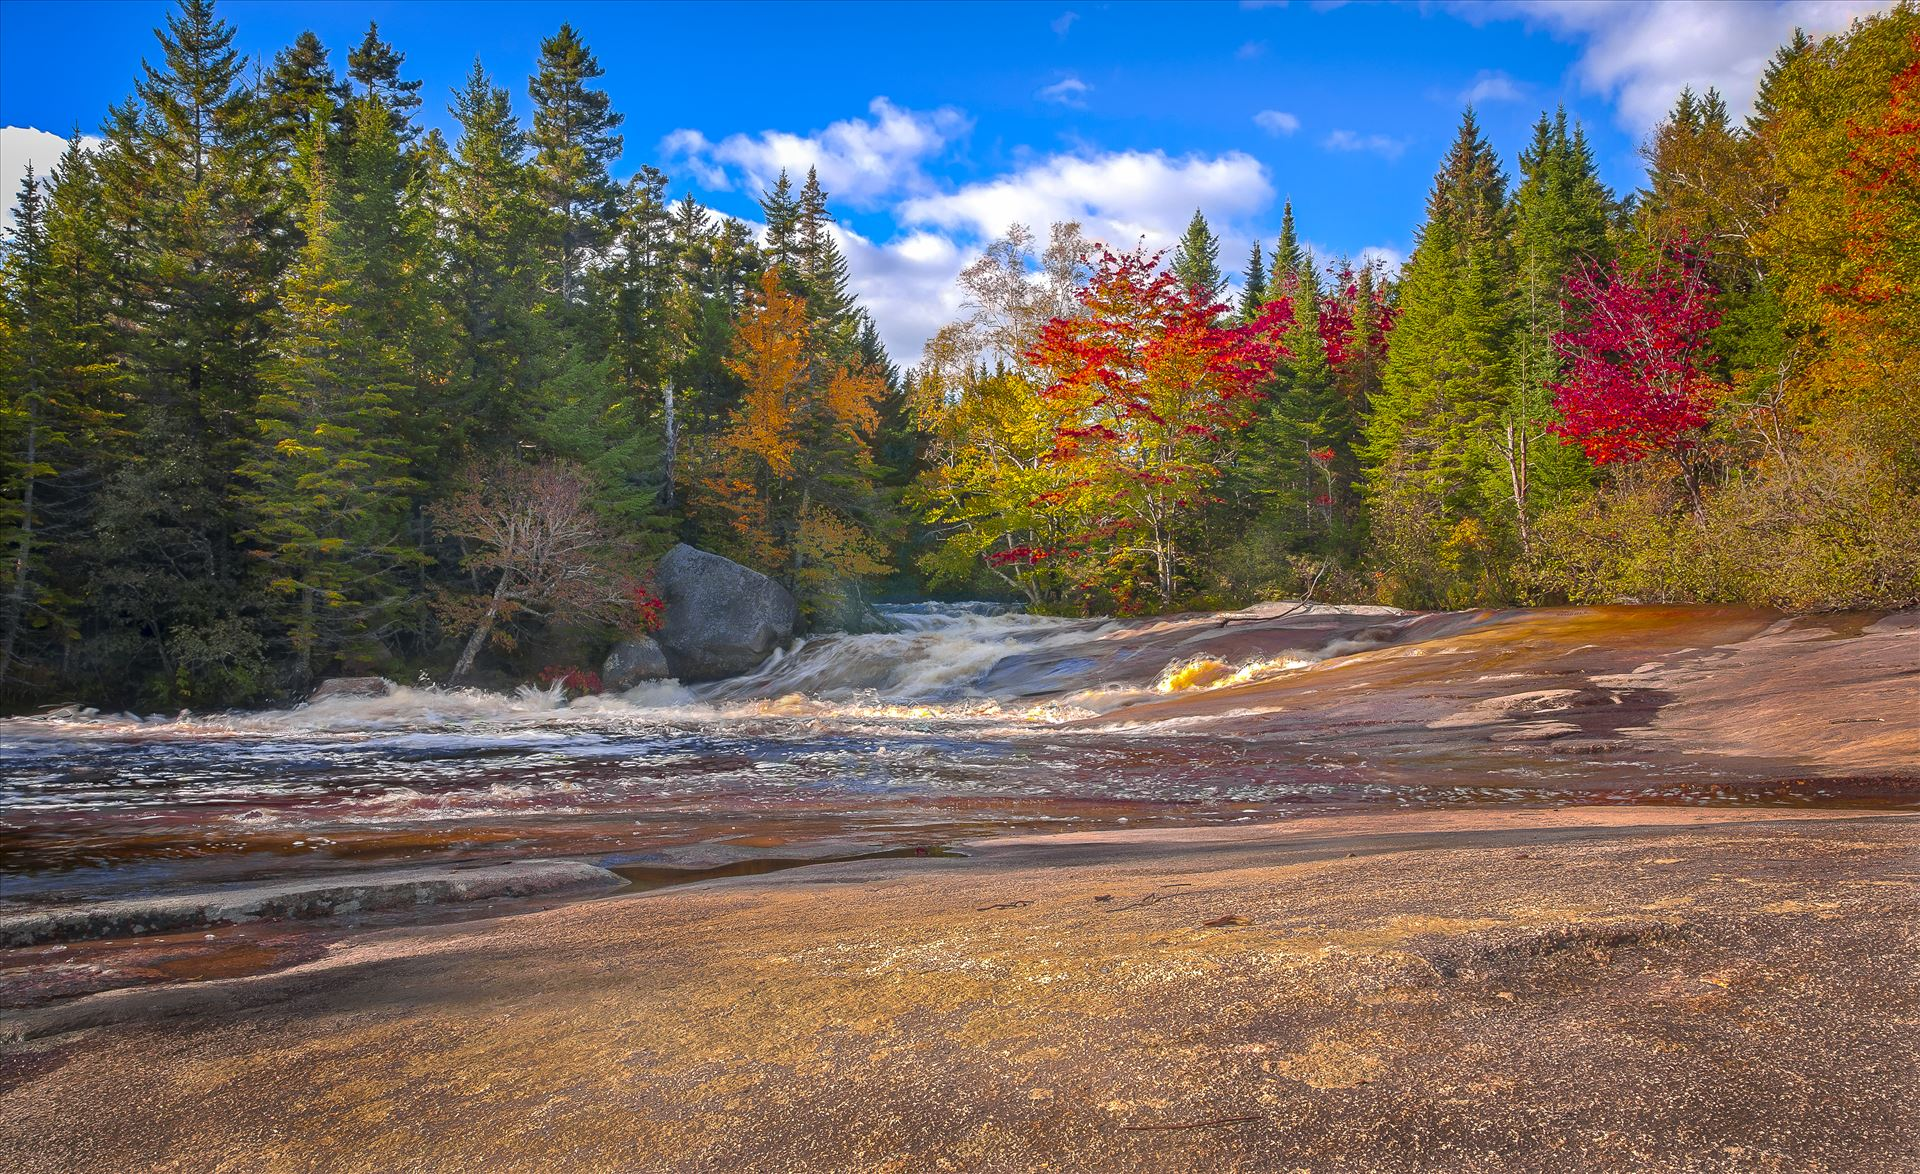 Ledge Falls - On Nesowadnehunk Stream in Baxter State Park, Maine by Buckmaster